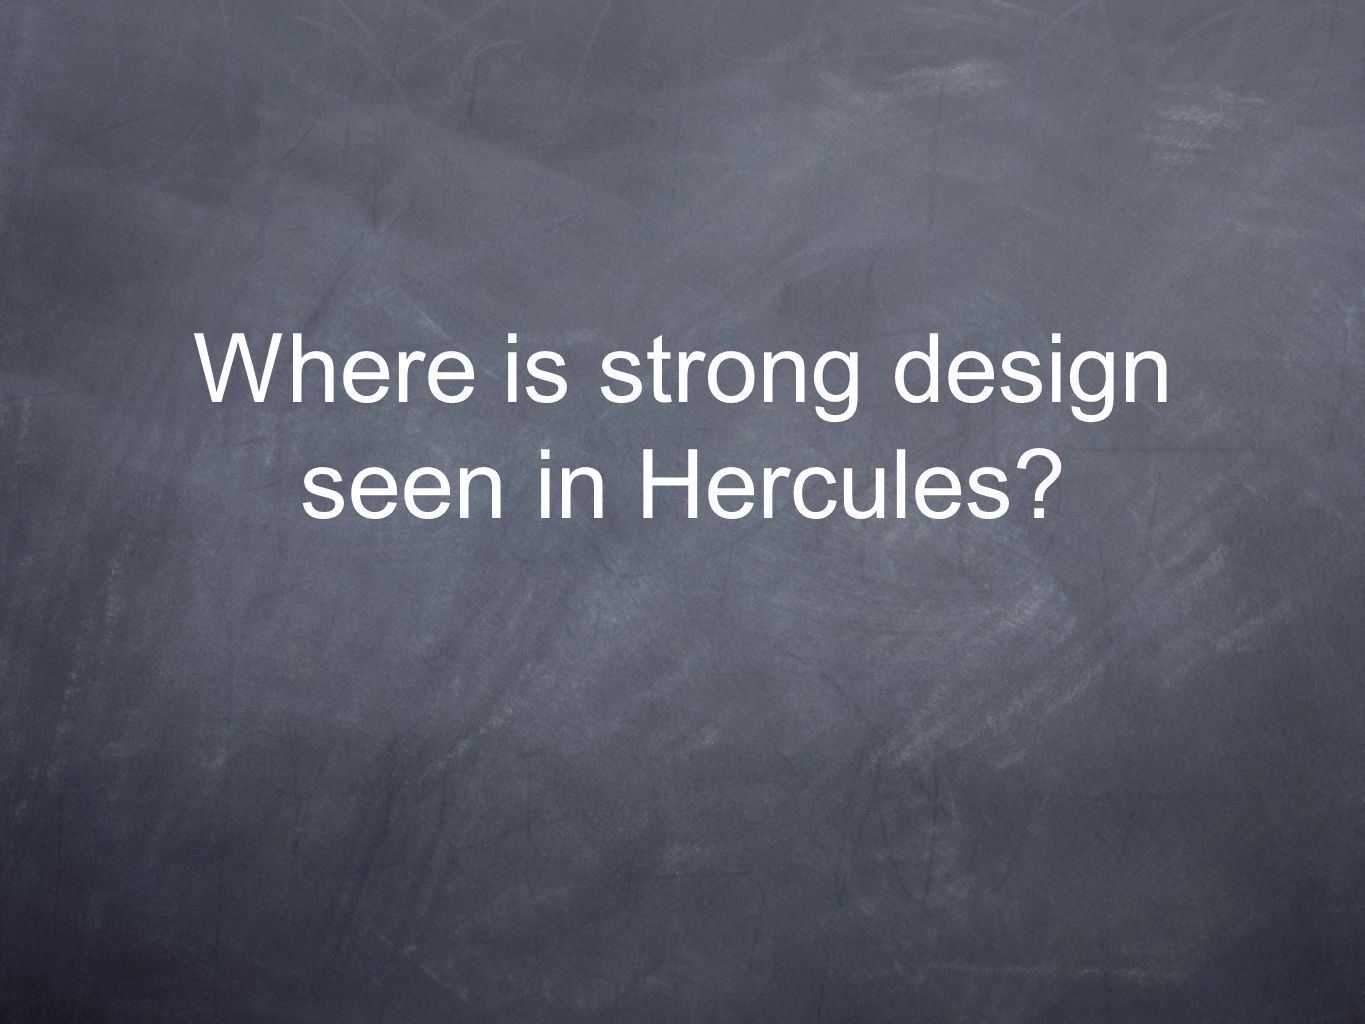 Where is strong design seen in Hercules